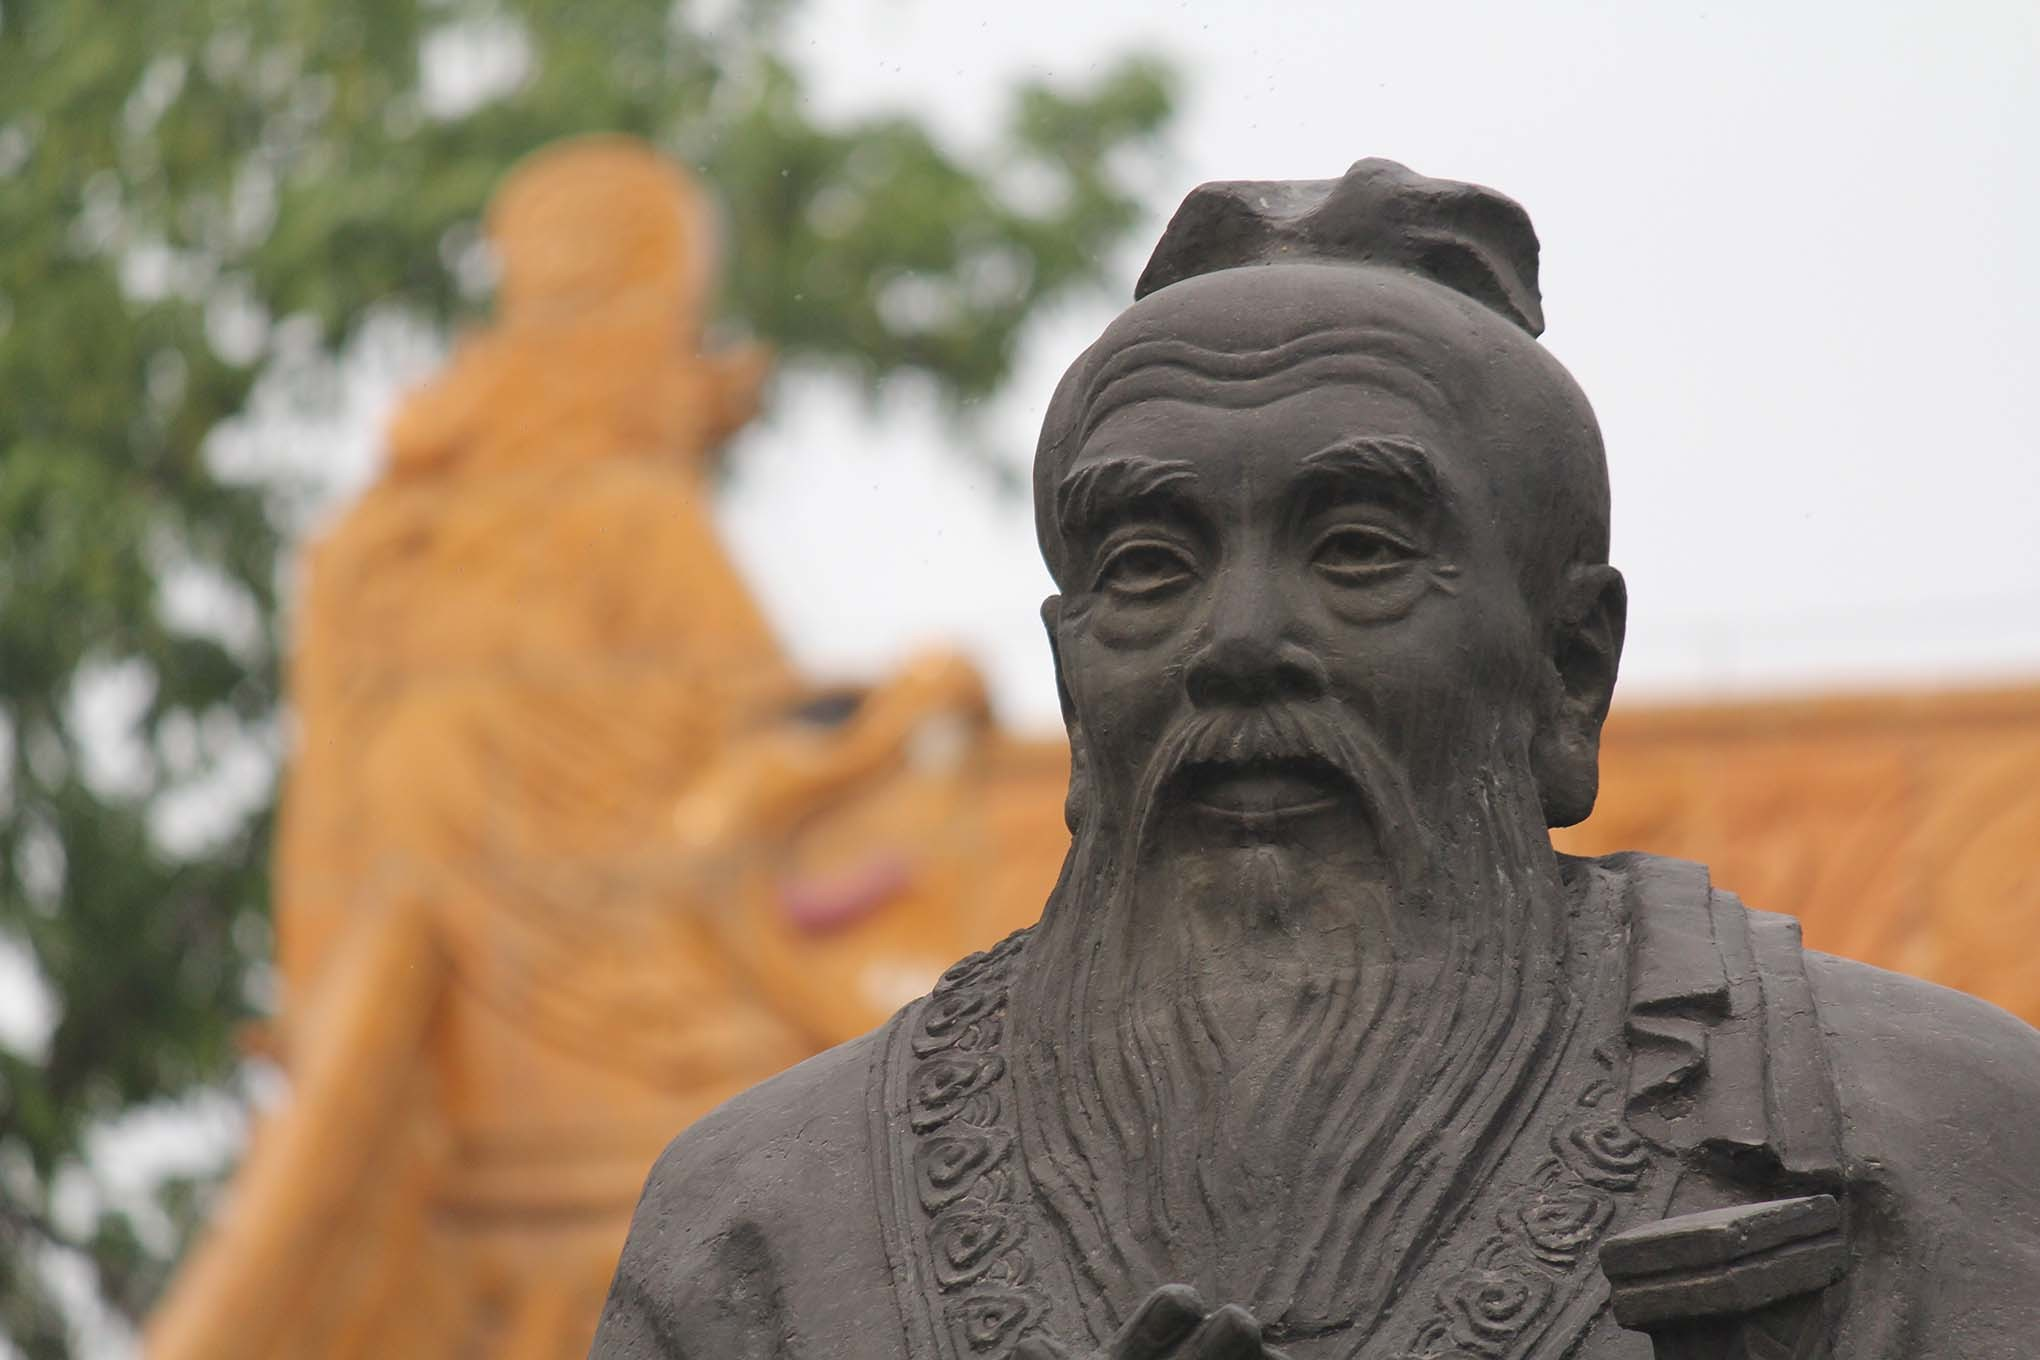 Sculpture of Confucius in Nanjing, China